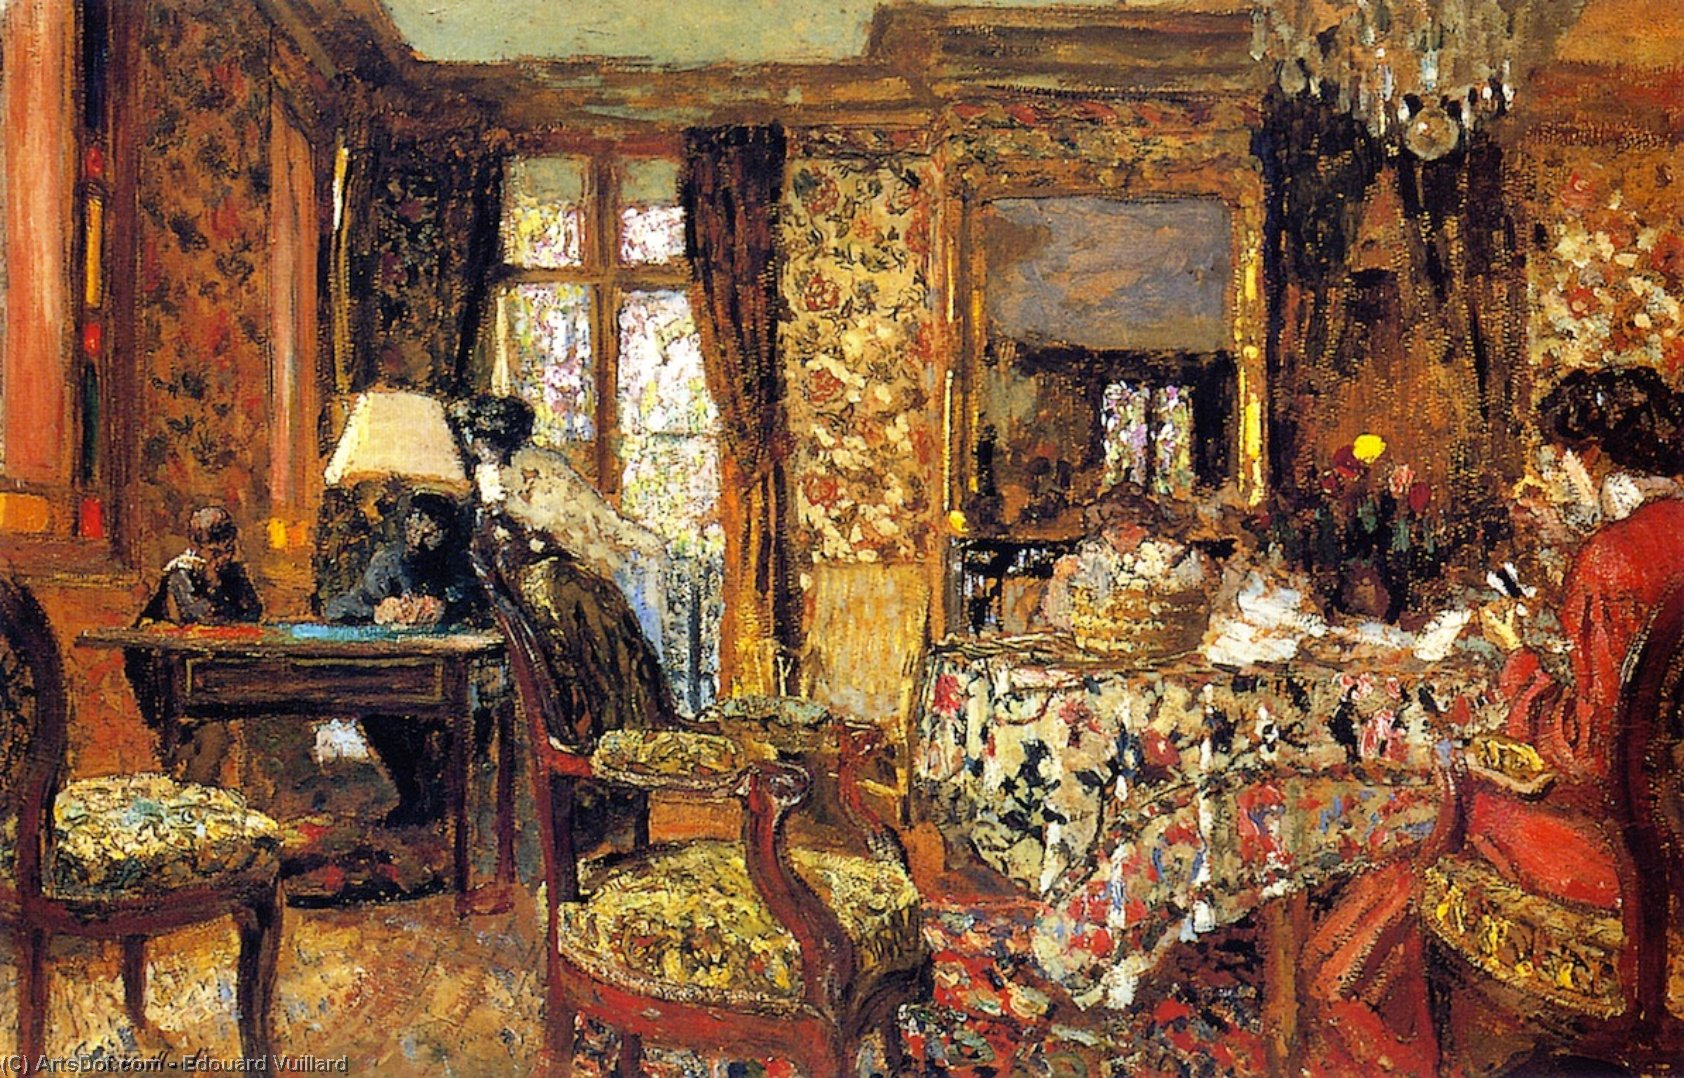 Wikioo.org - The Encyclopedia of Fine Arts - Painting, Artwork by Jean Edouard Vuillard - In the Room